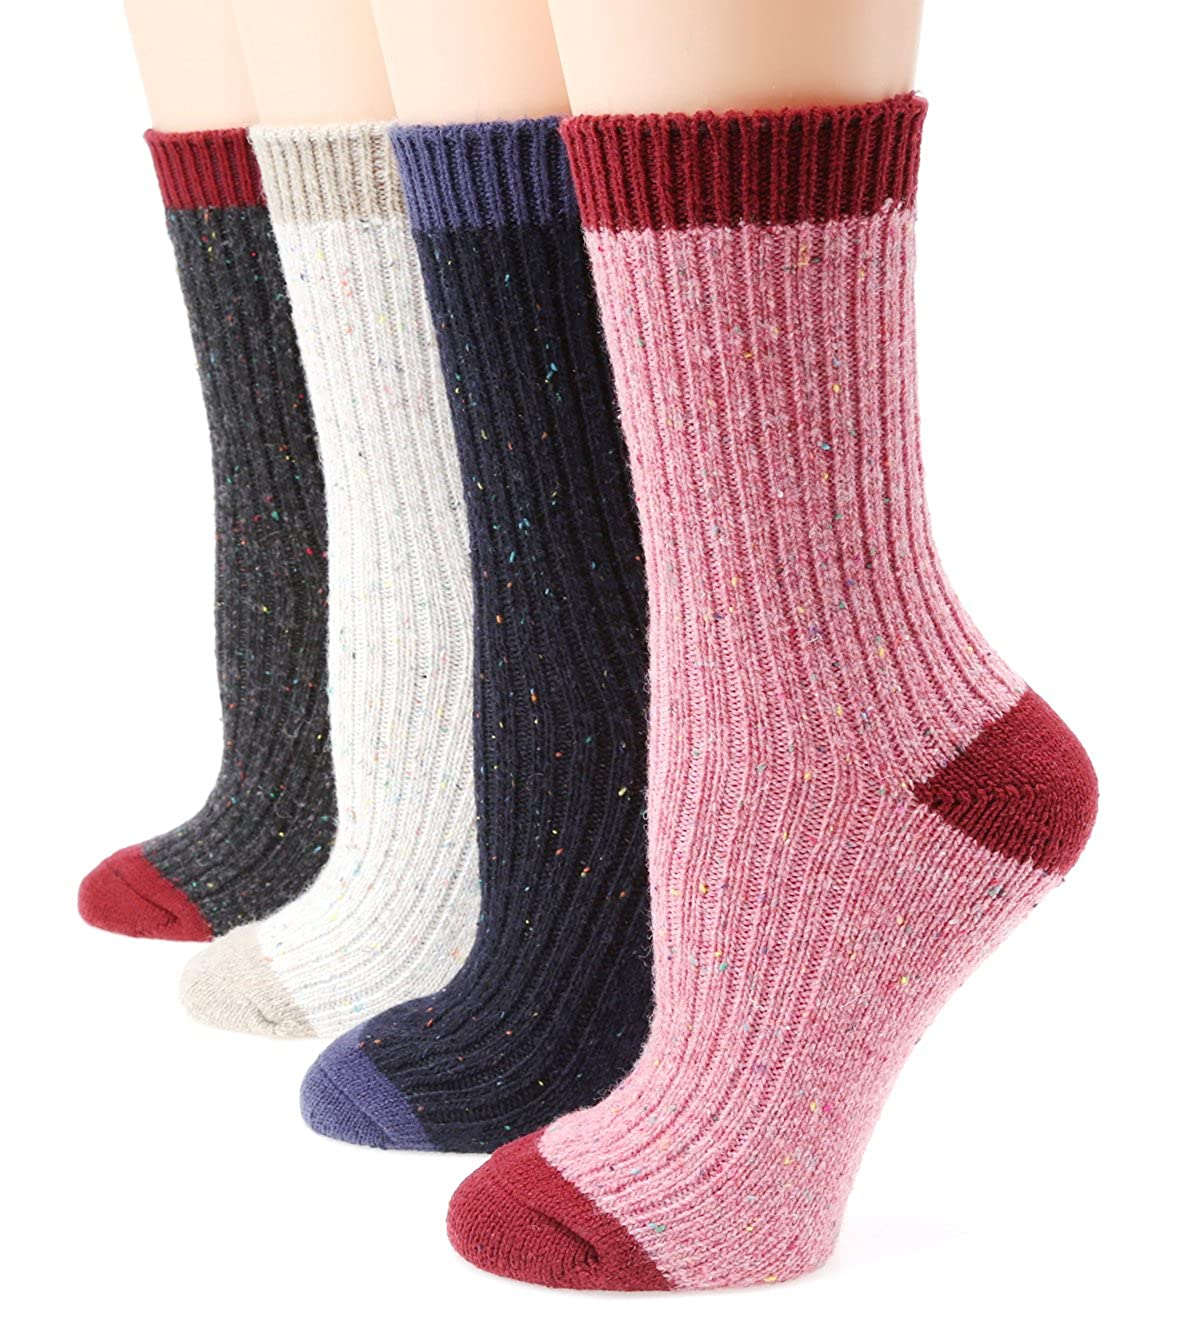 MIRMARU Women's Premium Winter 4 Pairs Wool And Cotton Blend Crew Socks Collection Grey Beige Brown) Medium / Shoe Size:6-9.